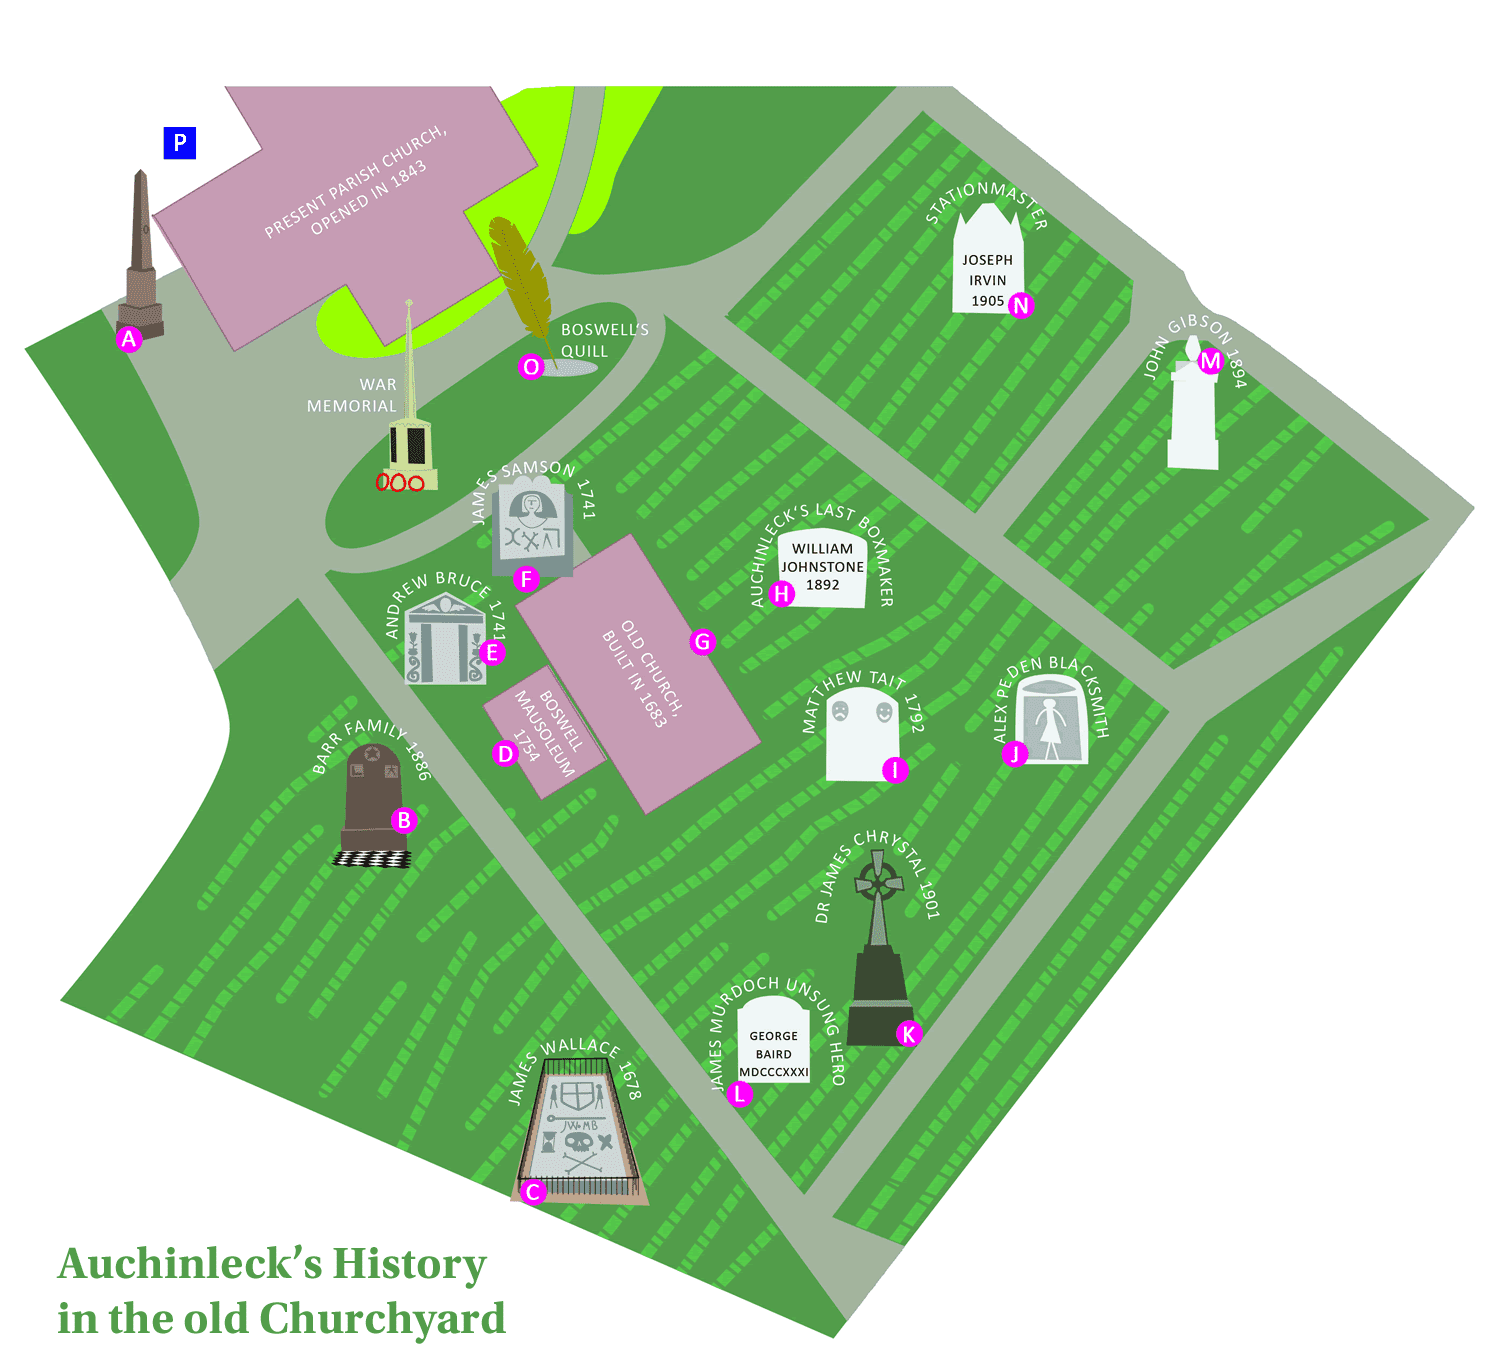 Auchinleck's History in the old Churchyard